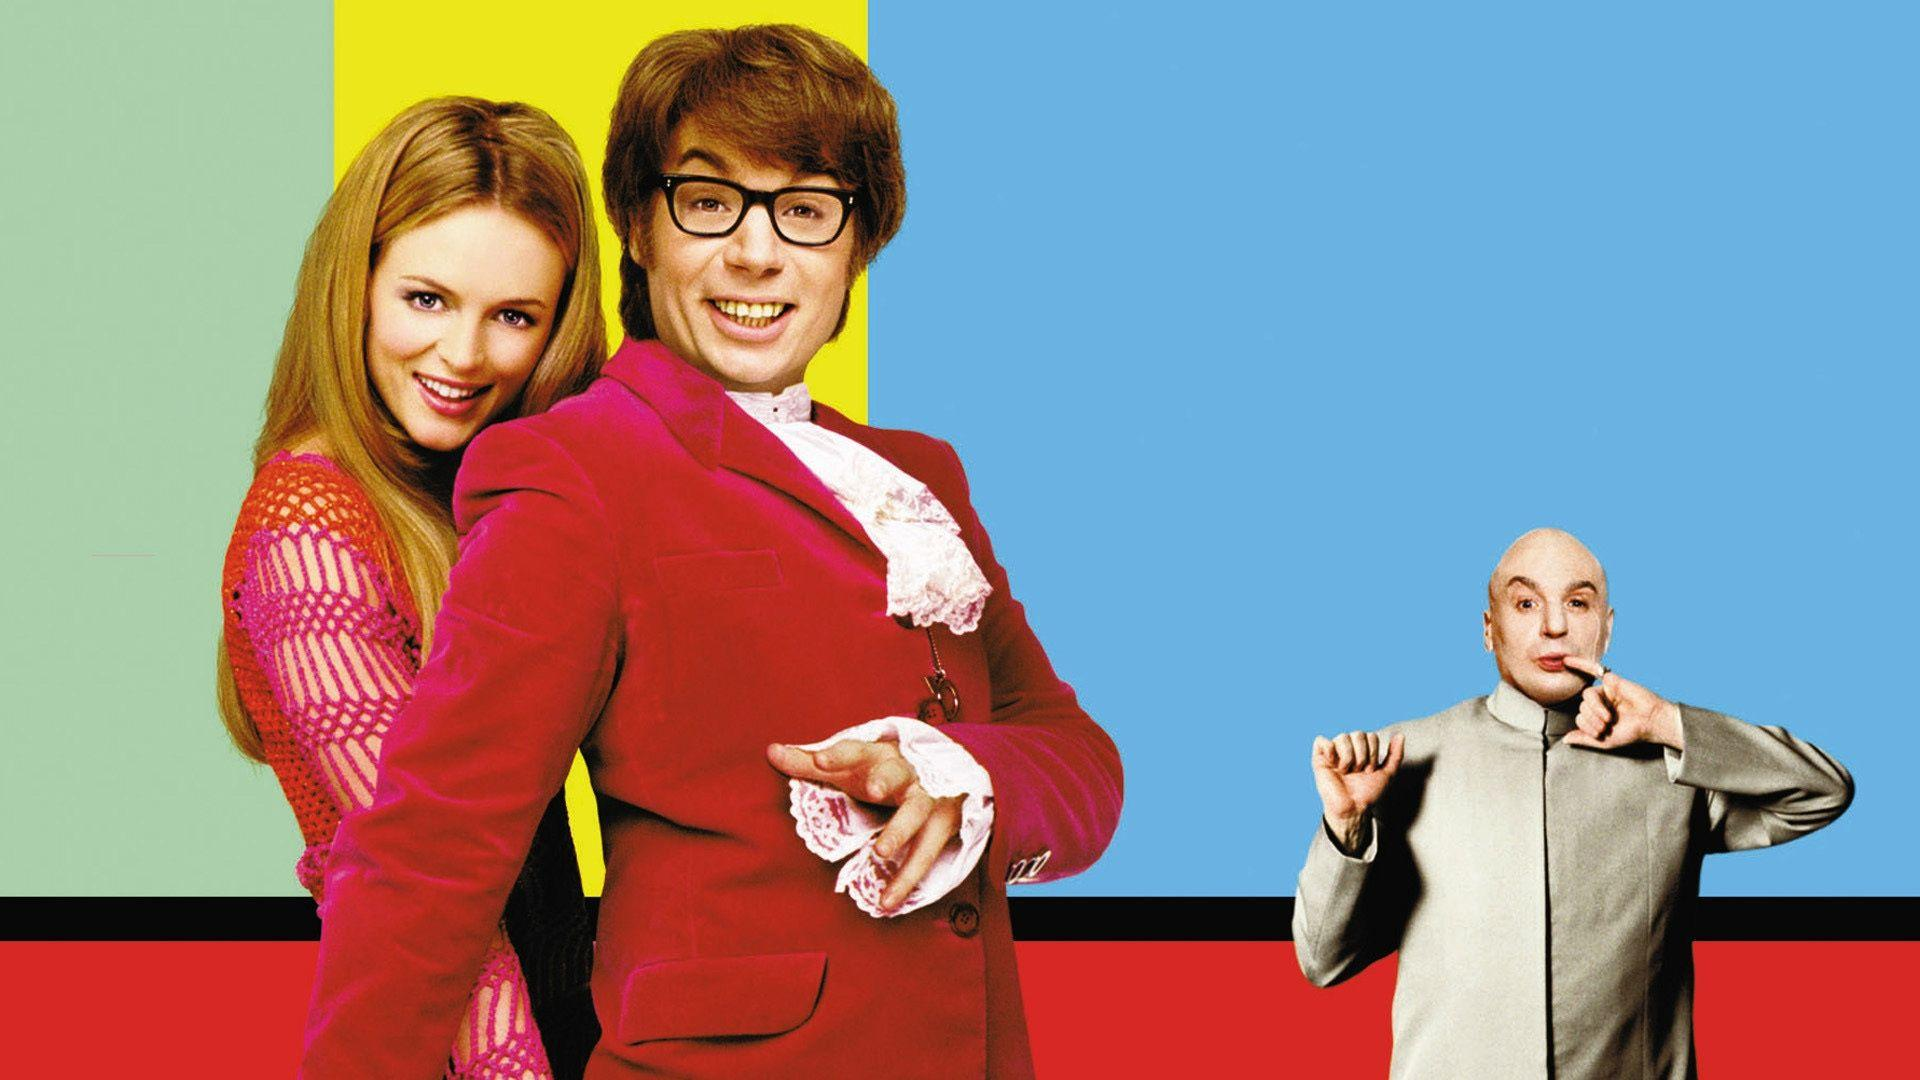 Austin Powers: The Spy Who Shagged Me Movie Wallpapers